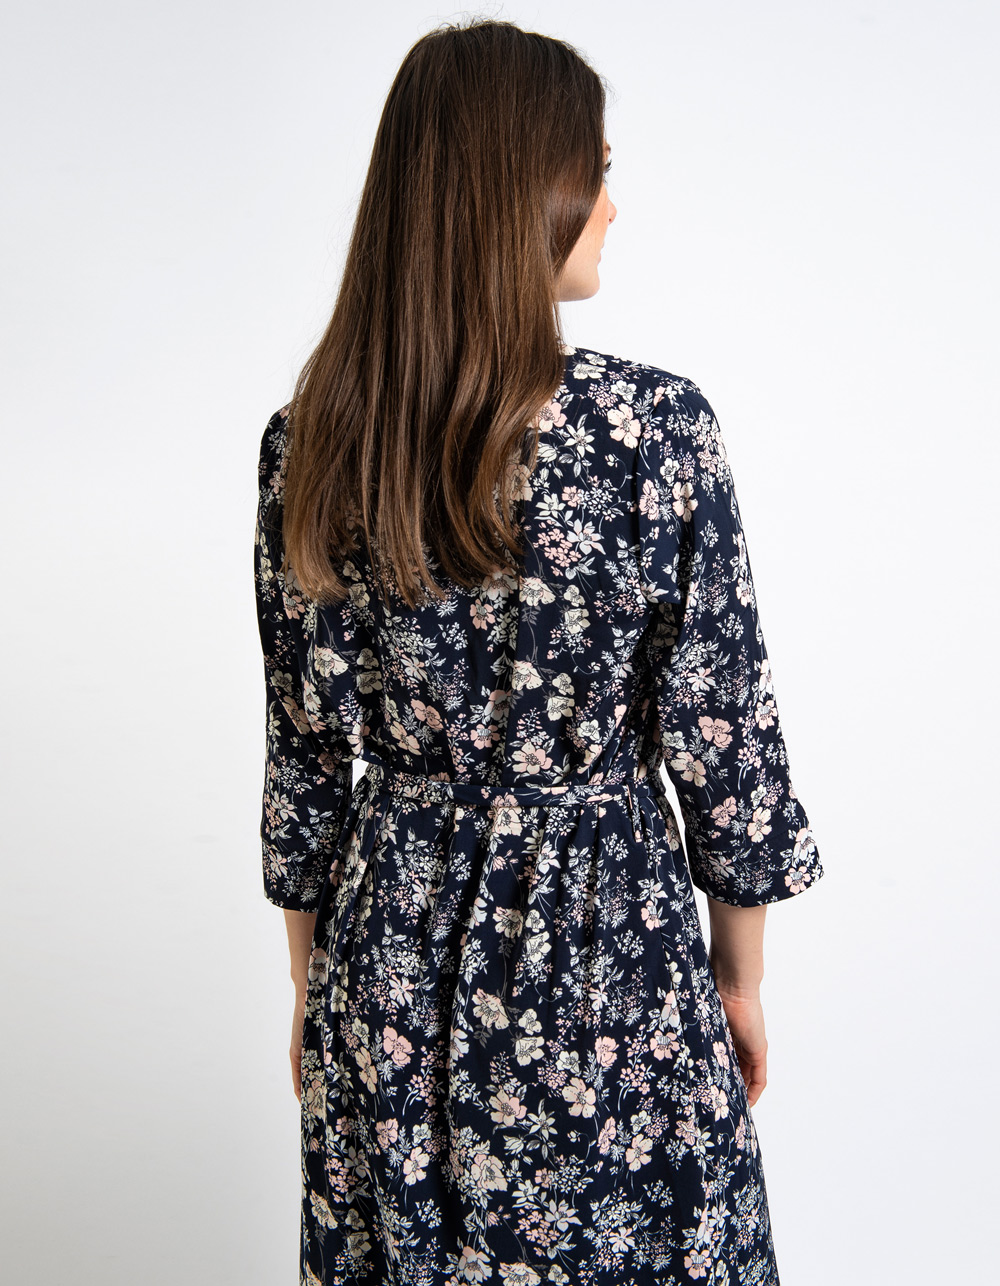 Vestido estampado floral - Backside